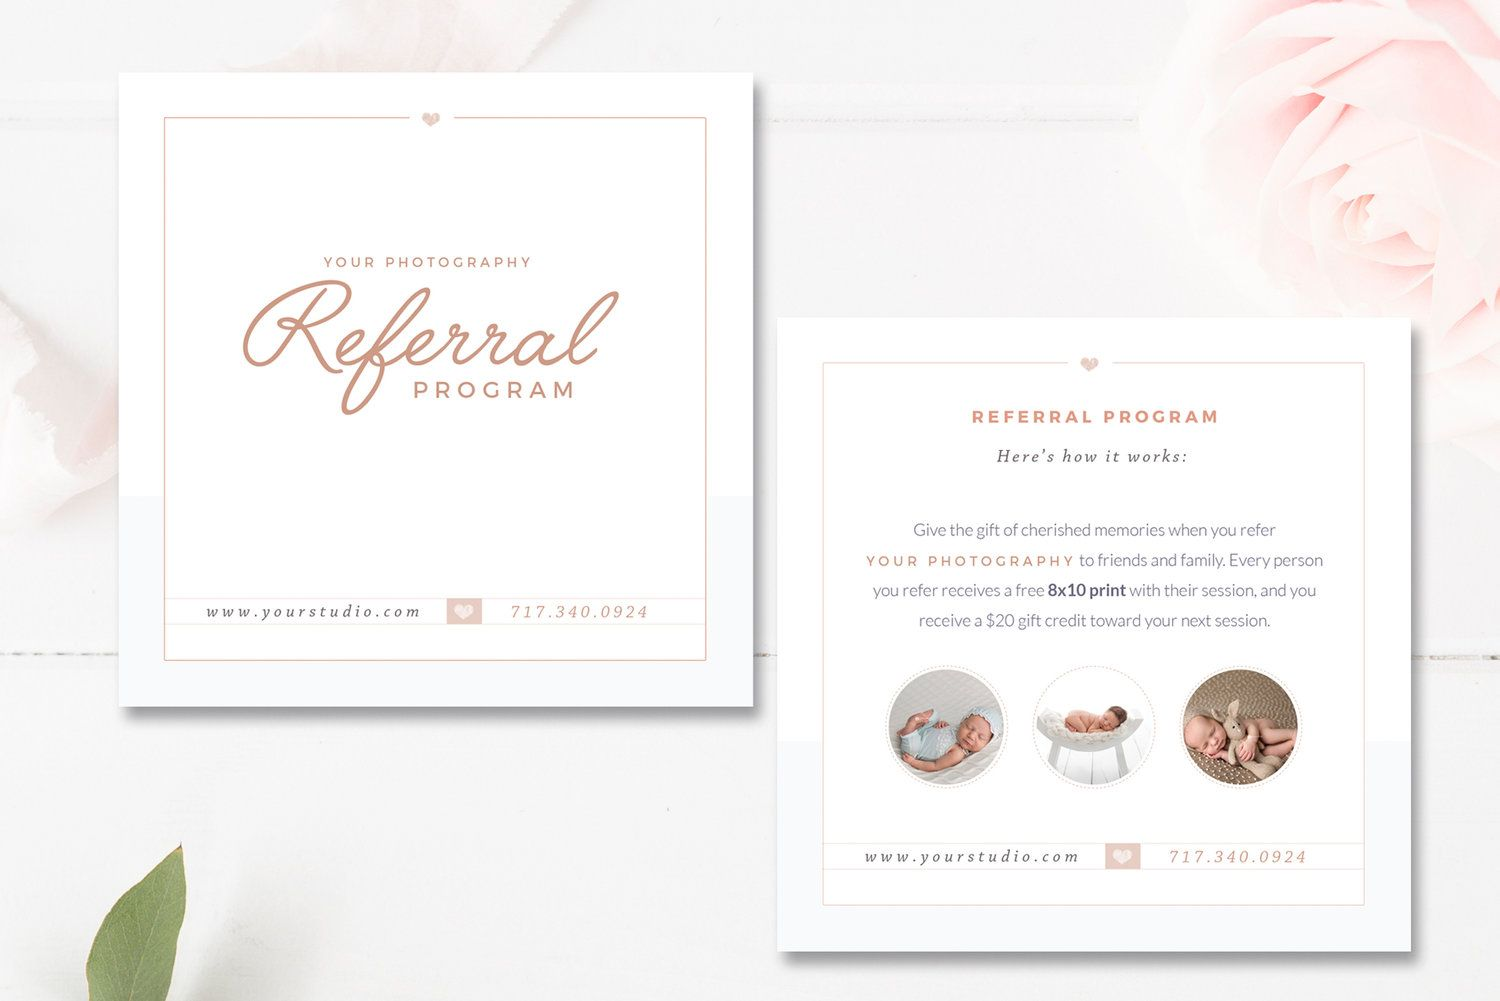 Photography Referral Card Templates Referral Program By Stephanie Design Card Templates Free Referral Cards Free Business Card Templates